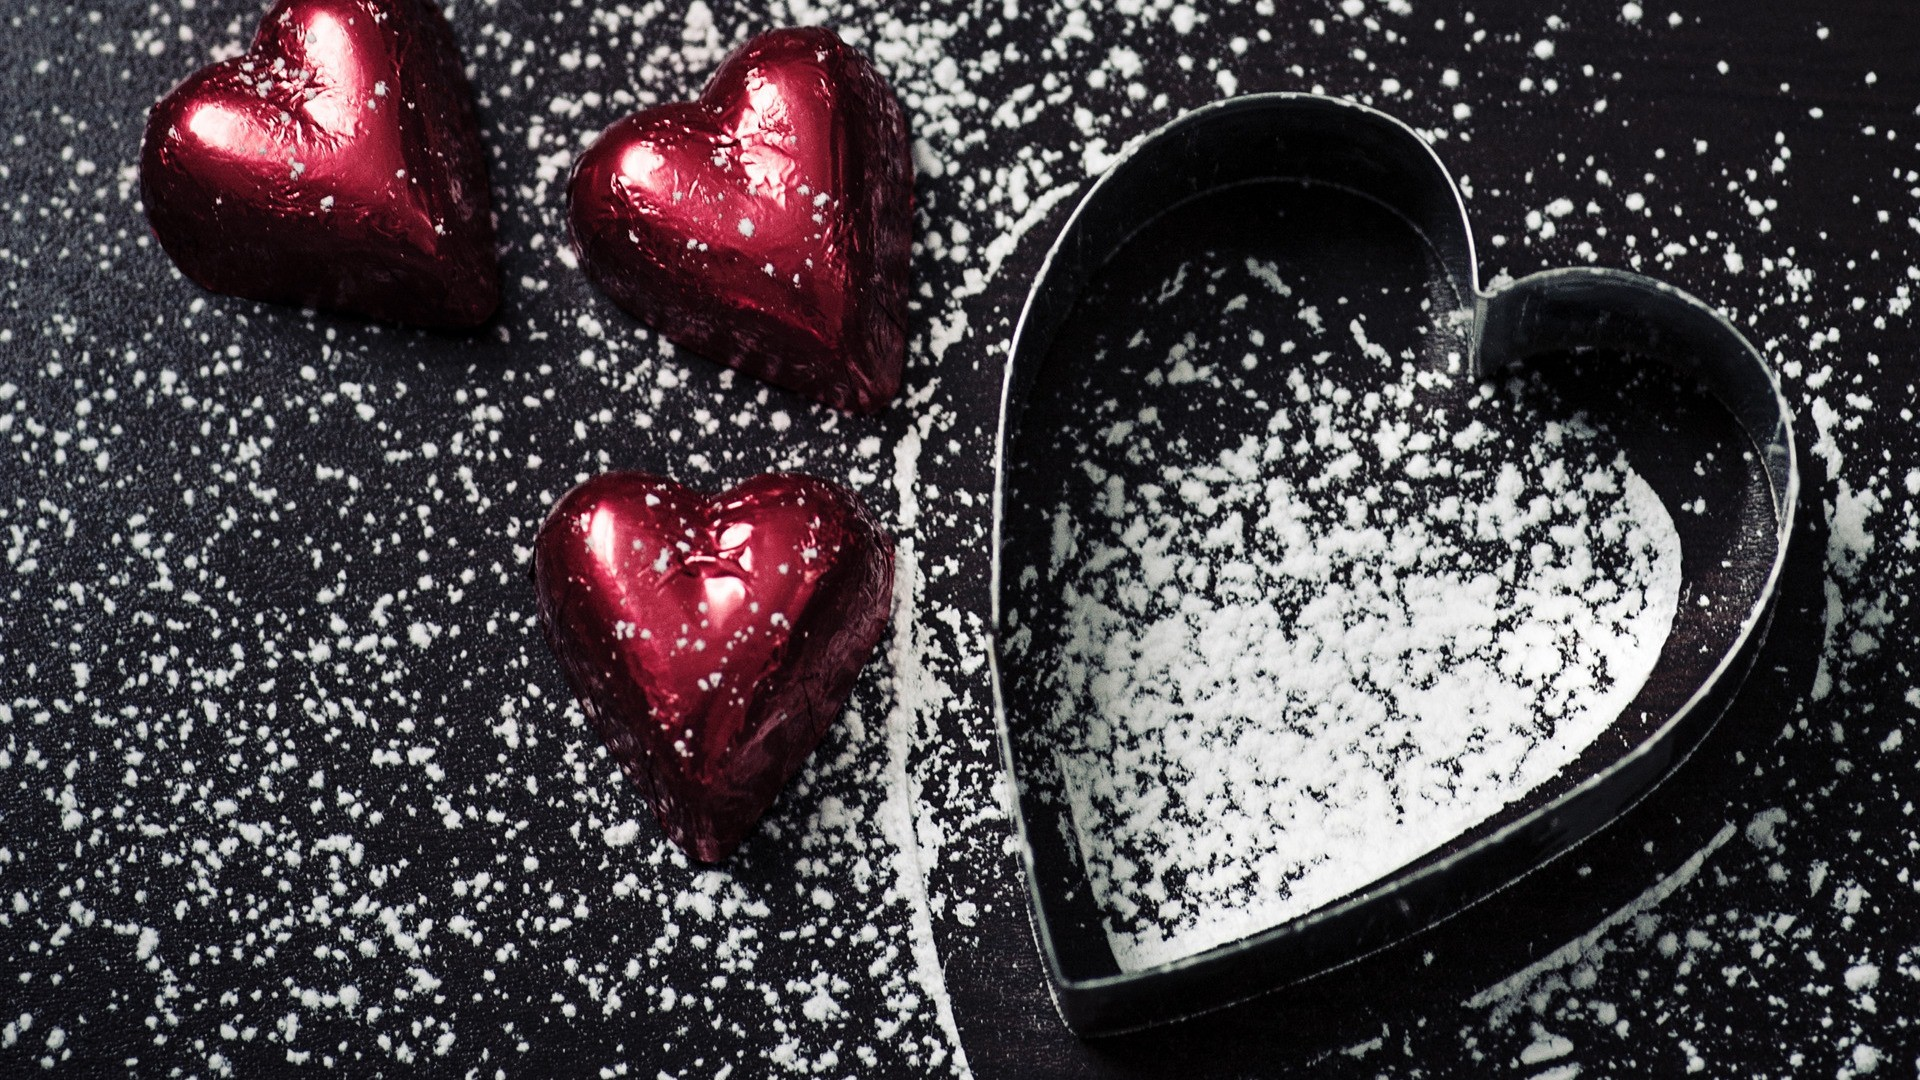 Beautiful Small Heart Love In Black Background - Black Heart Images For Whatsapp Dp - HD Wallpaper